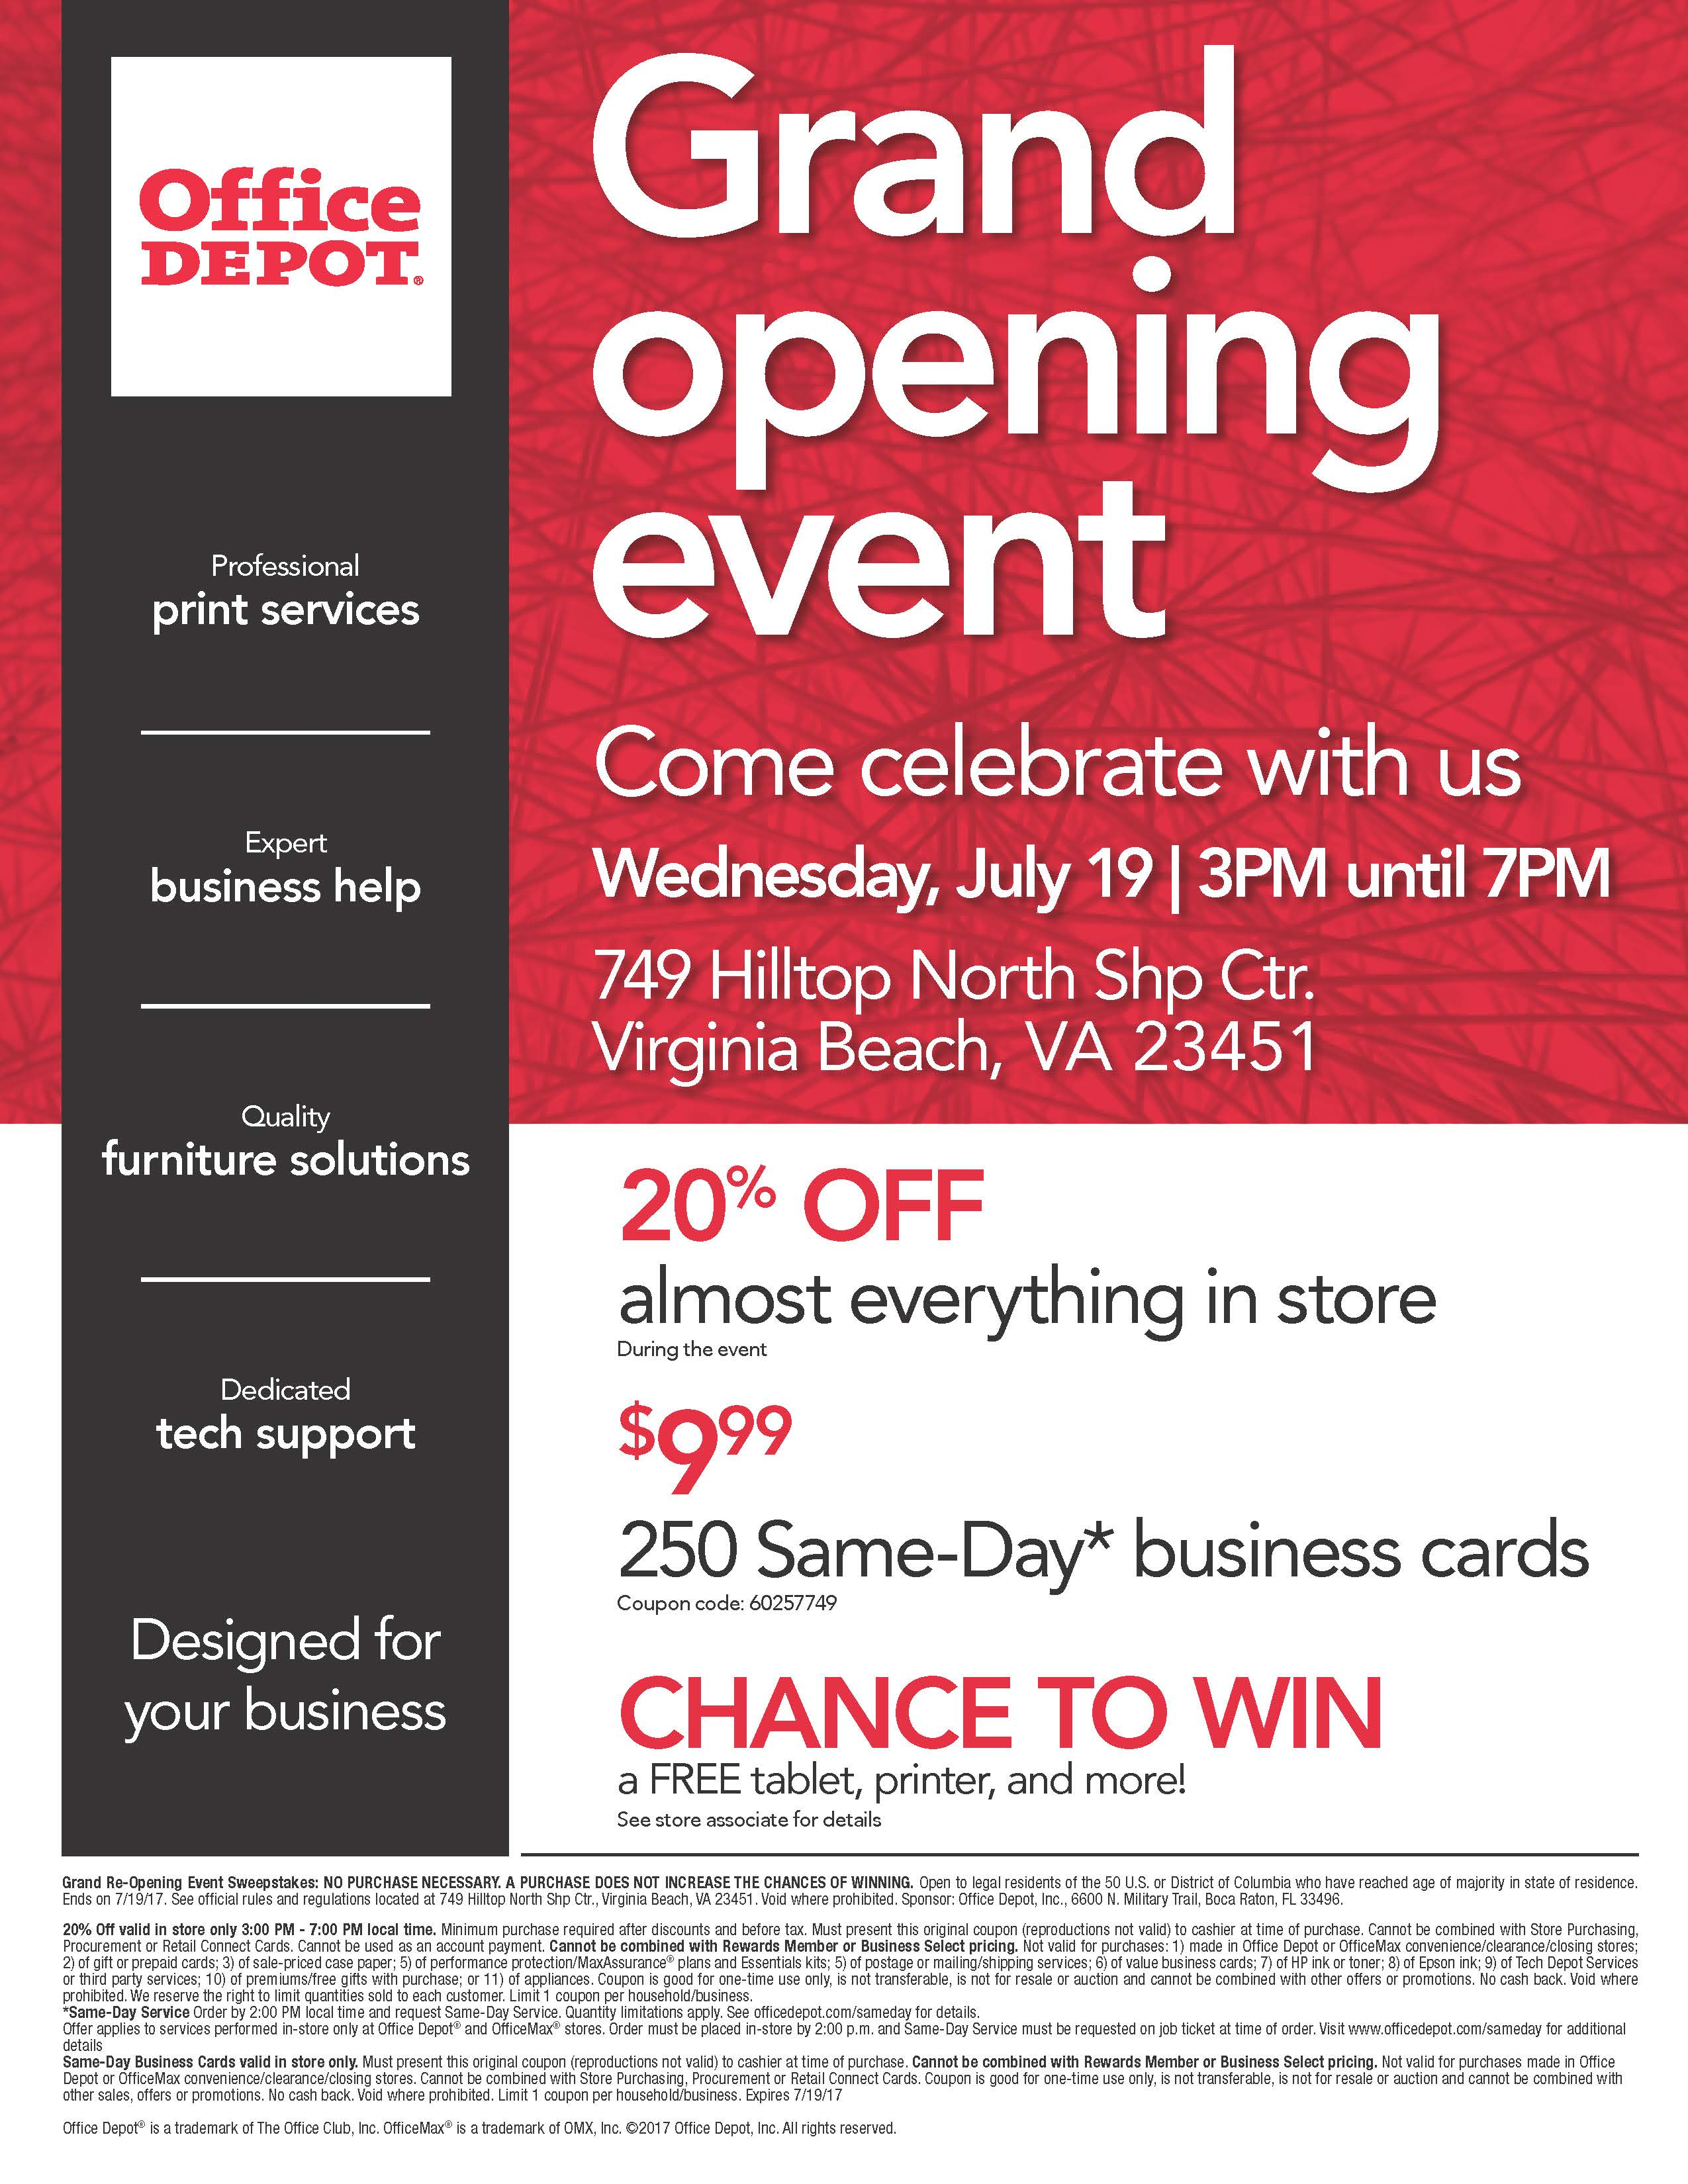 Office Depot Grand Reopening